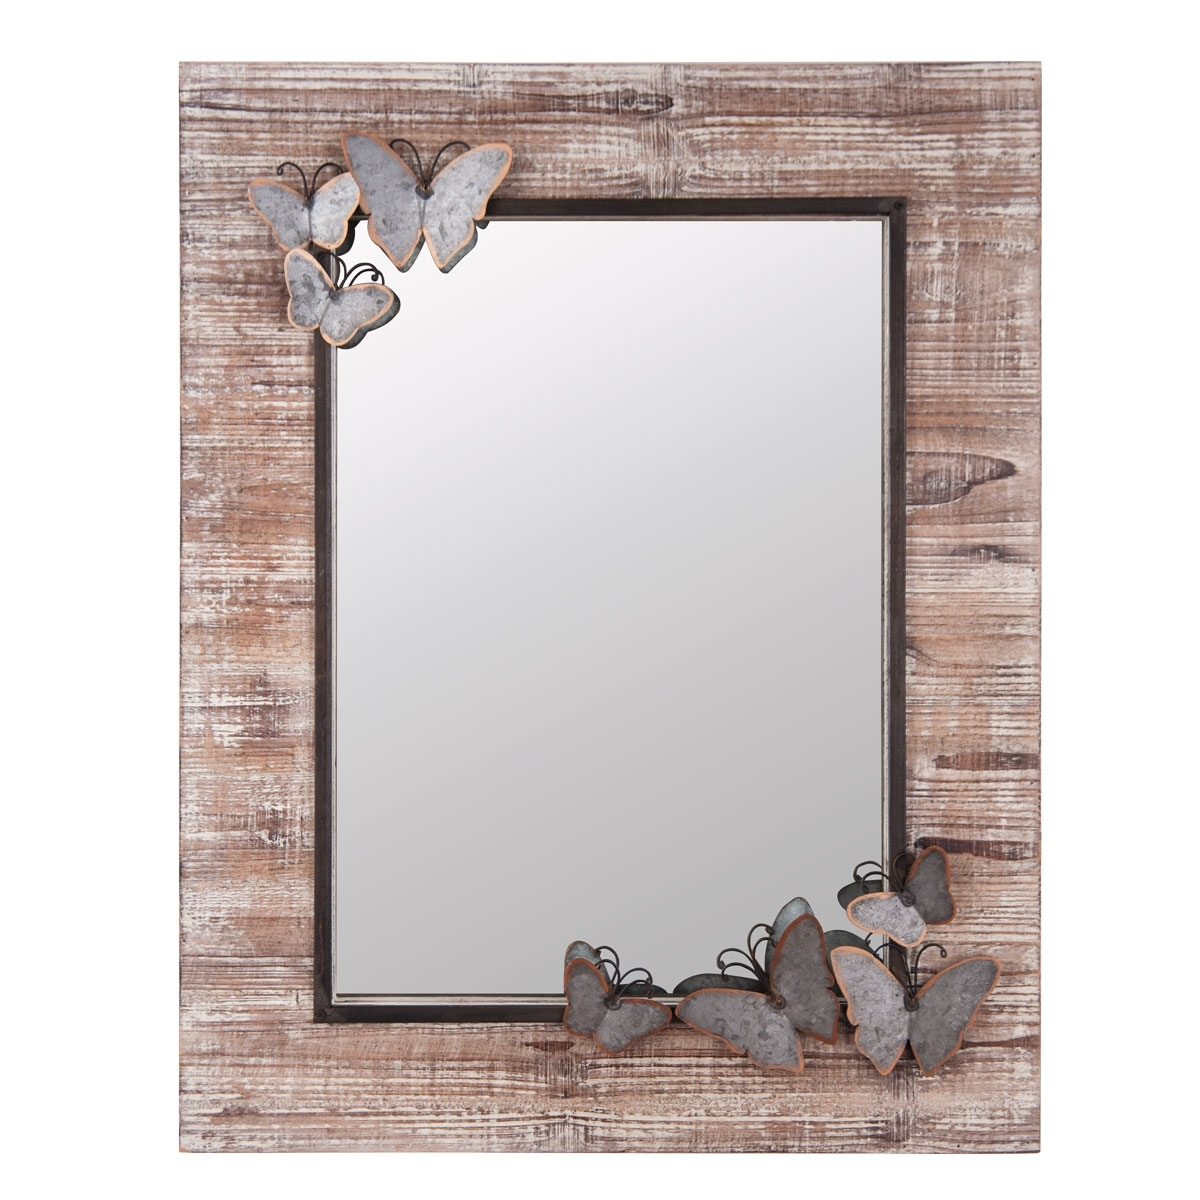 Butterfly Wood Frame Wall Mirror Plum Post For Butterfly Wall Mirror (Image 4 of 15)